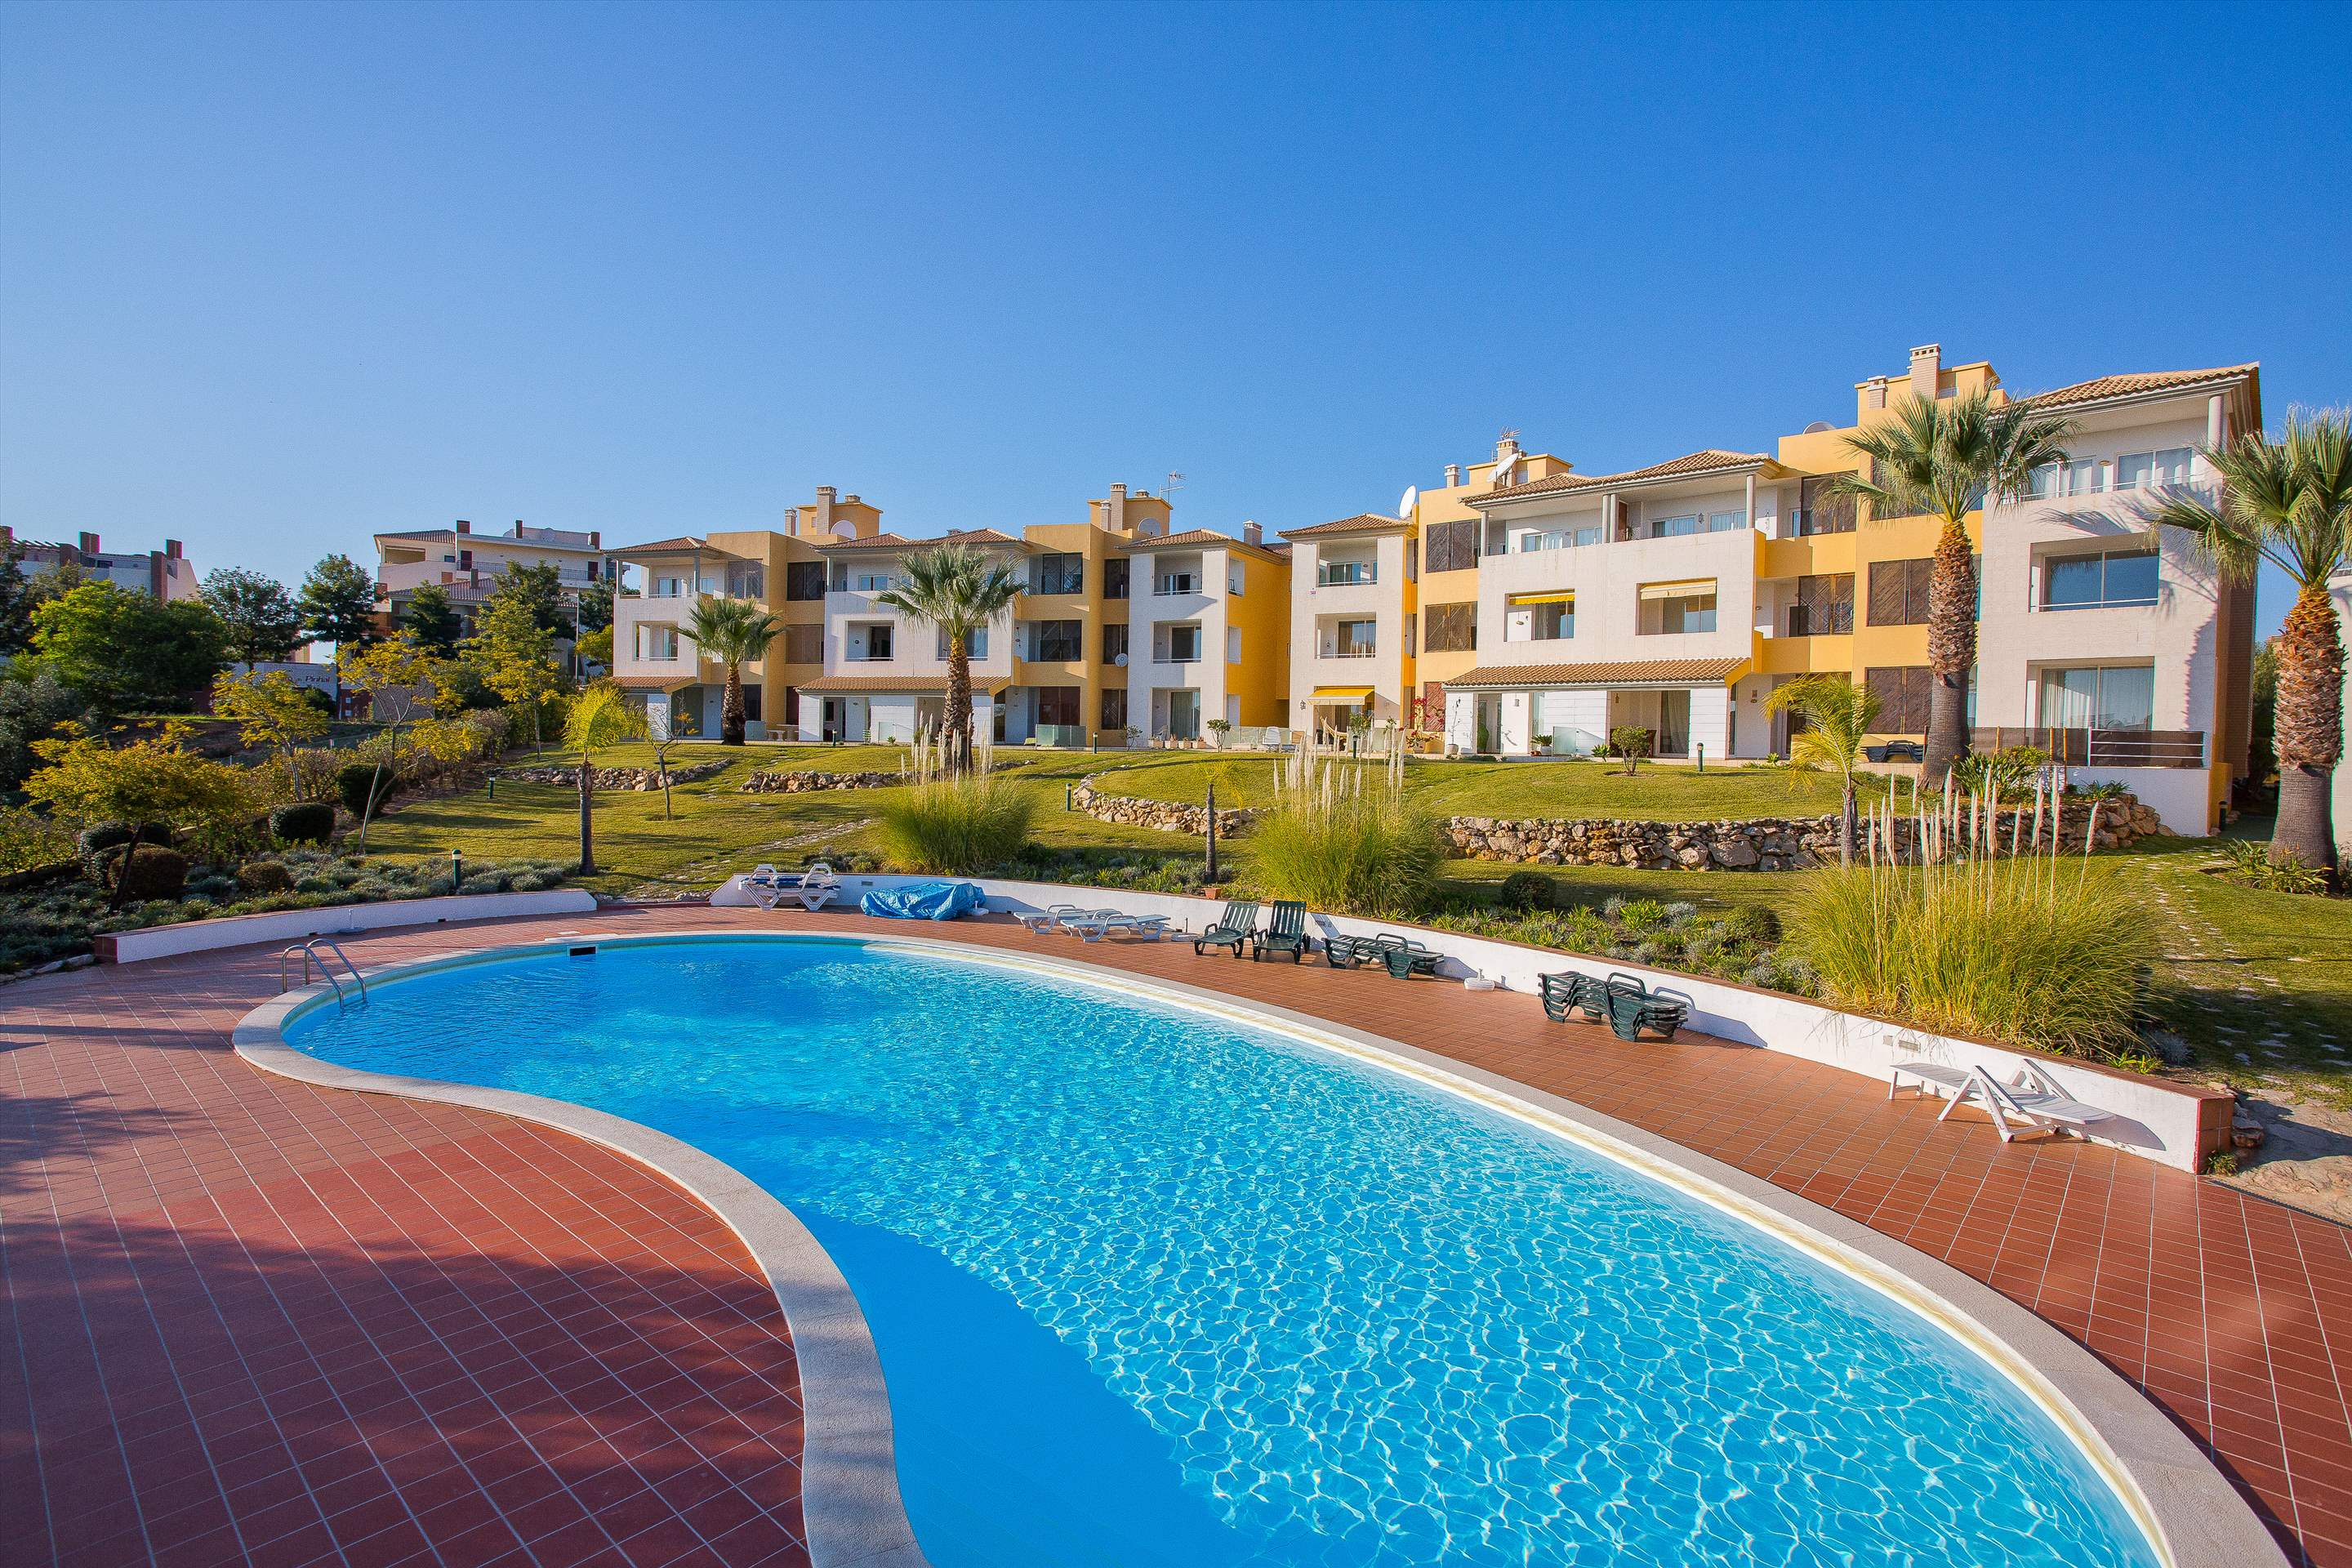 Apartment Caroline, 2 bedroom apartment in Vilamoura Area, Algarve